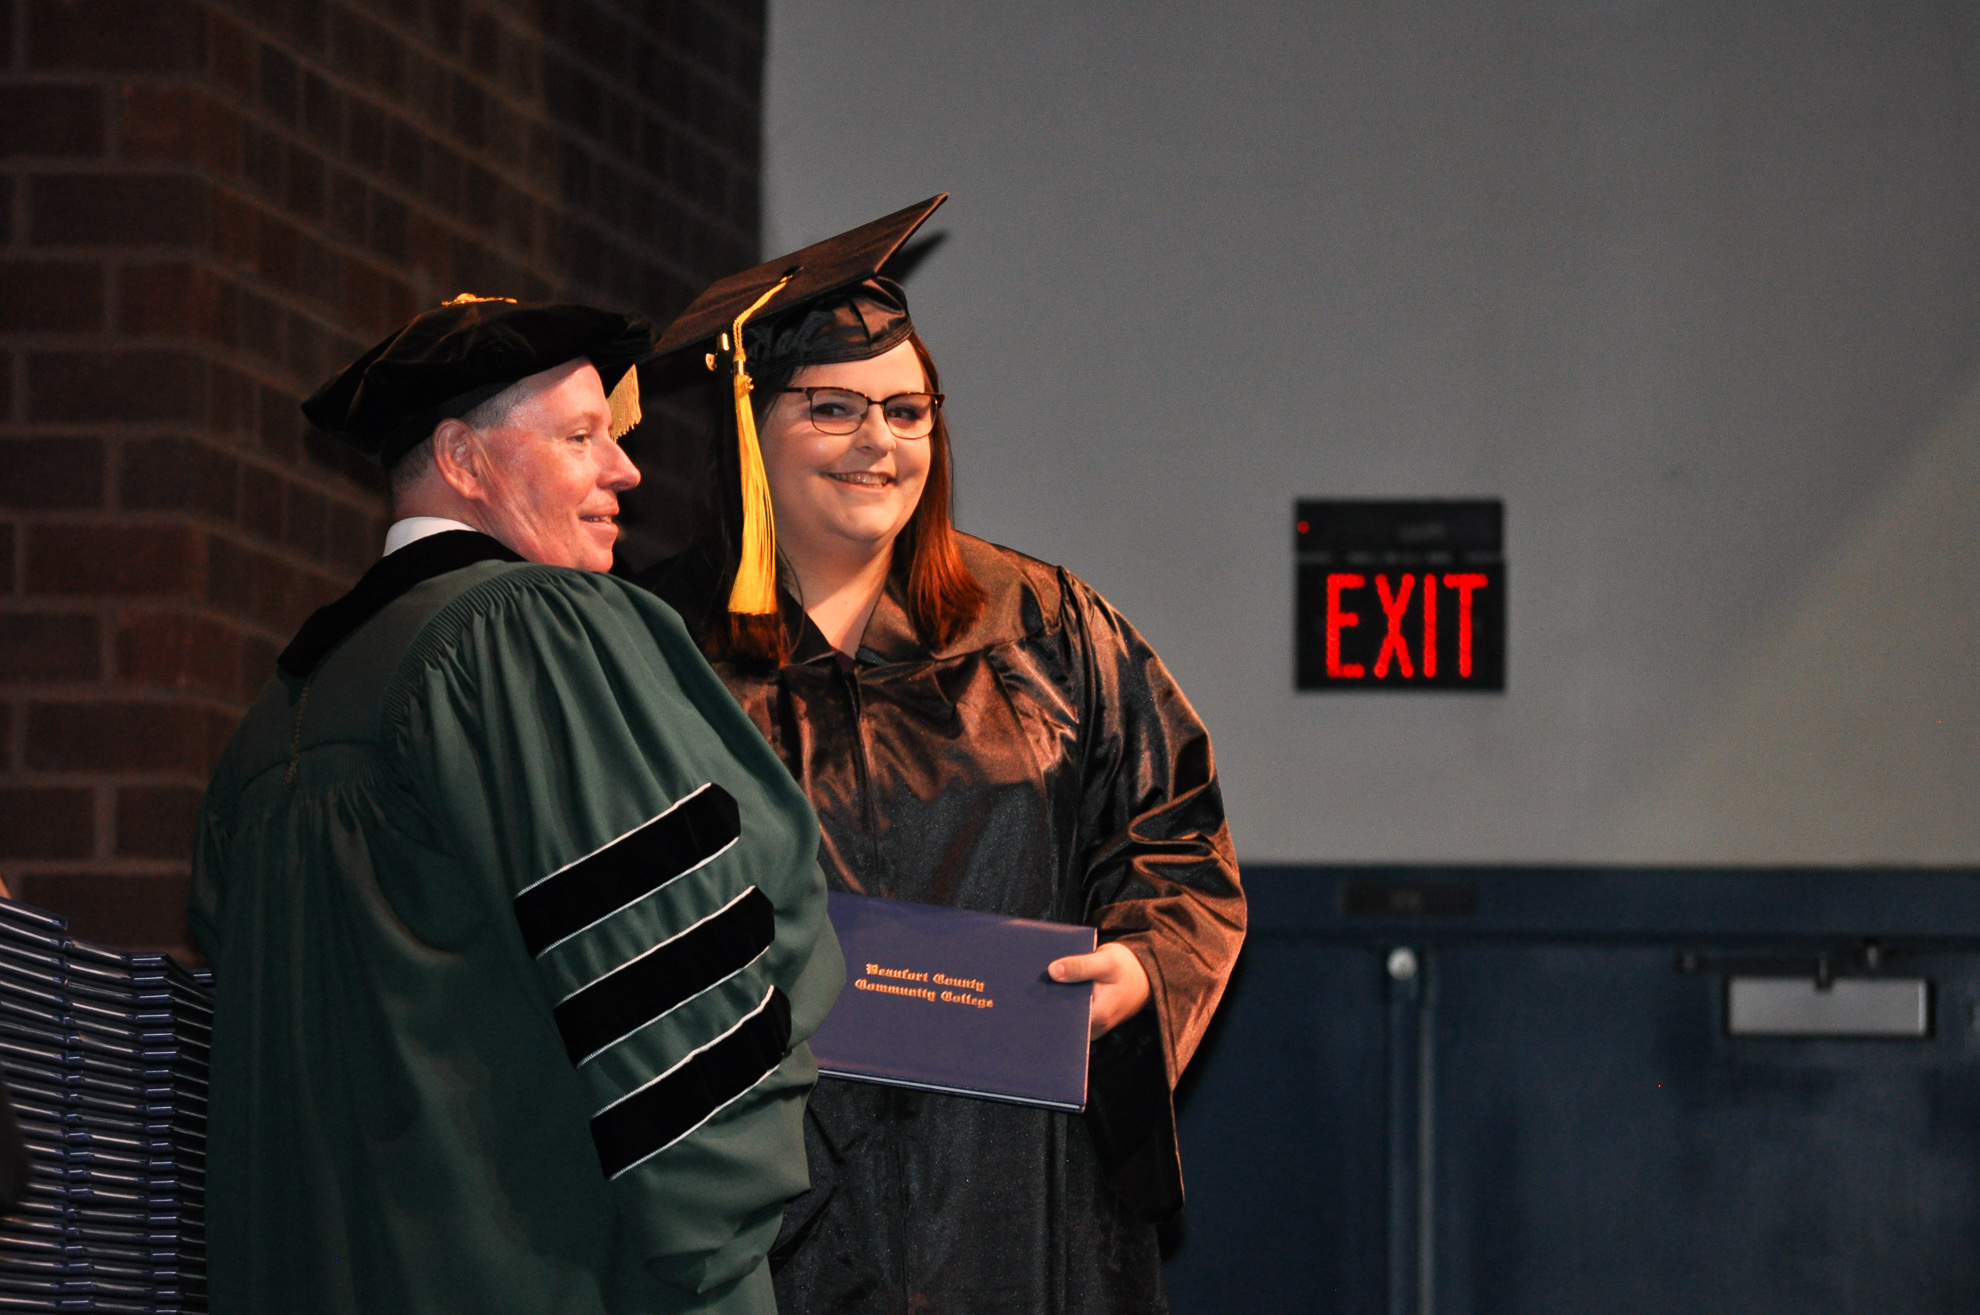 A person receives a diploma at graduation.